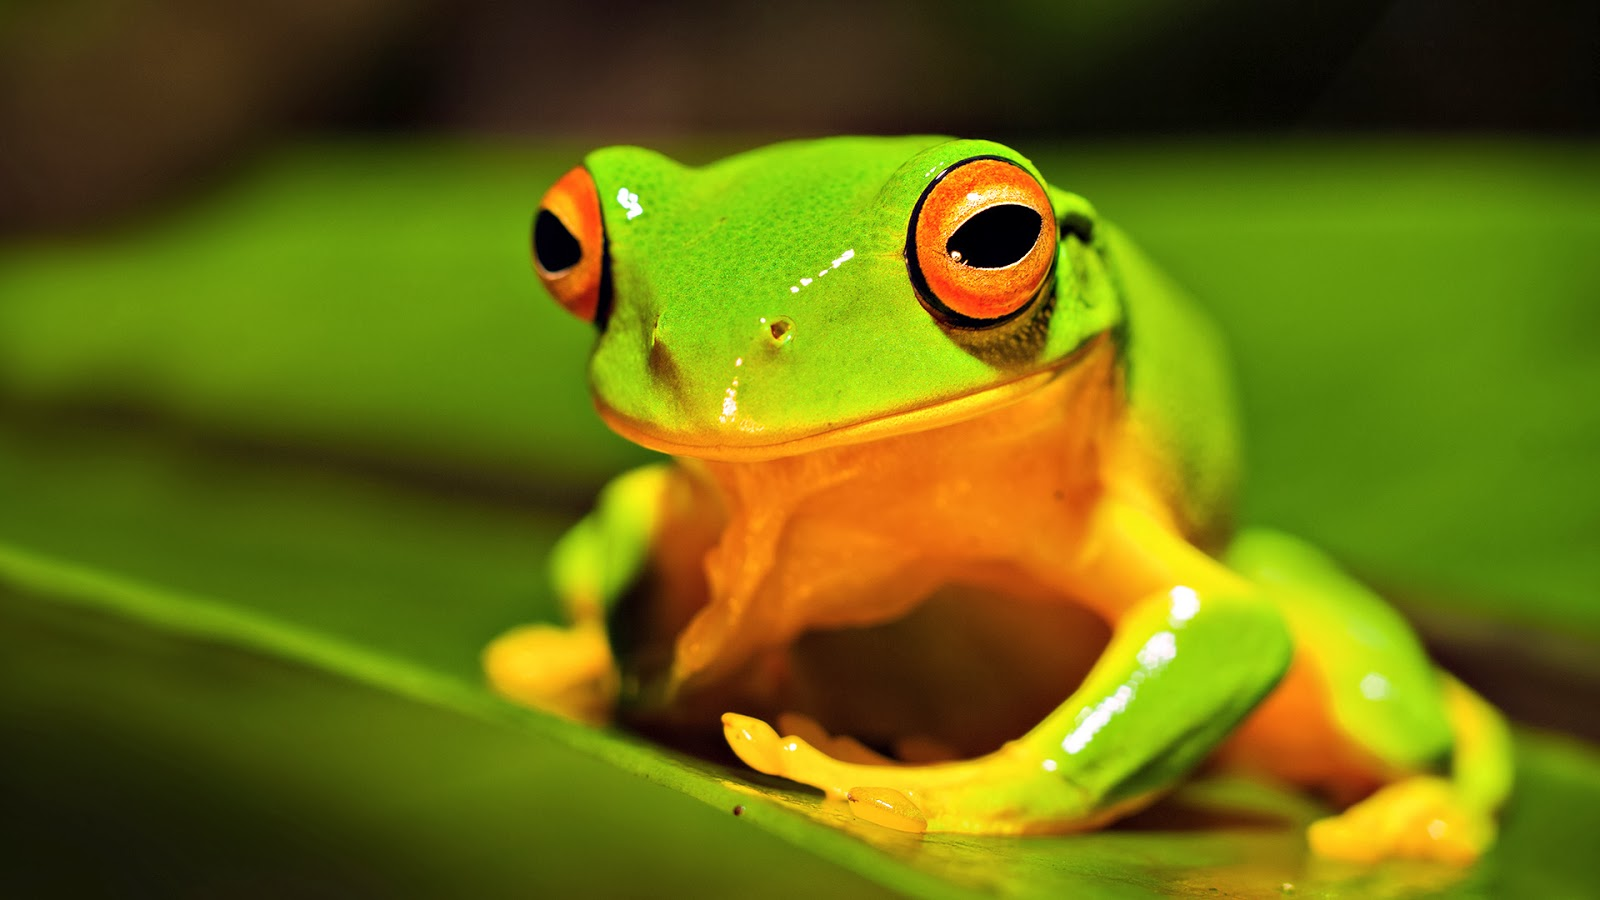 Beautiful Frog Wallpaper Download For Free Goats Animal: Beautiful Desktop Wallpapers 2014